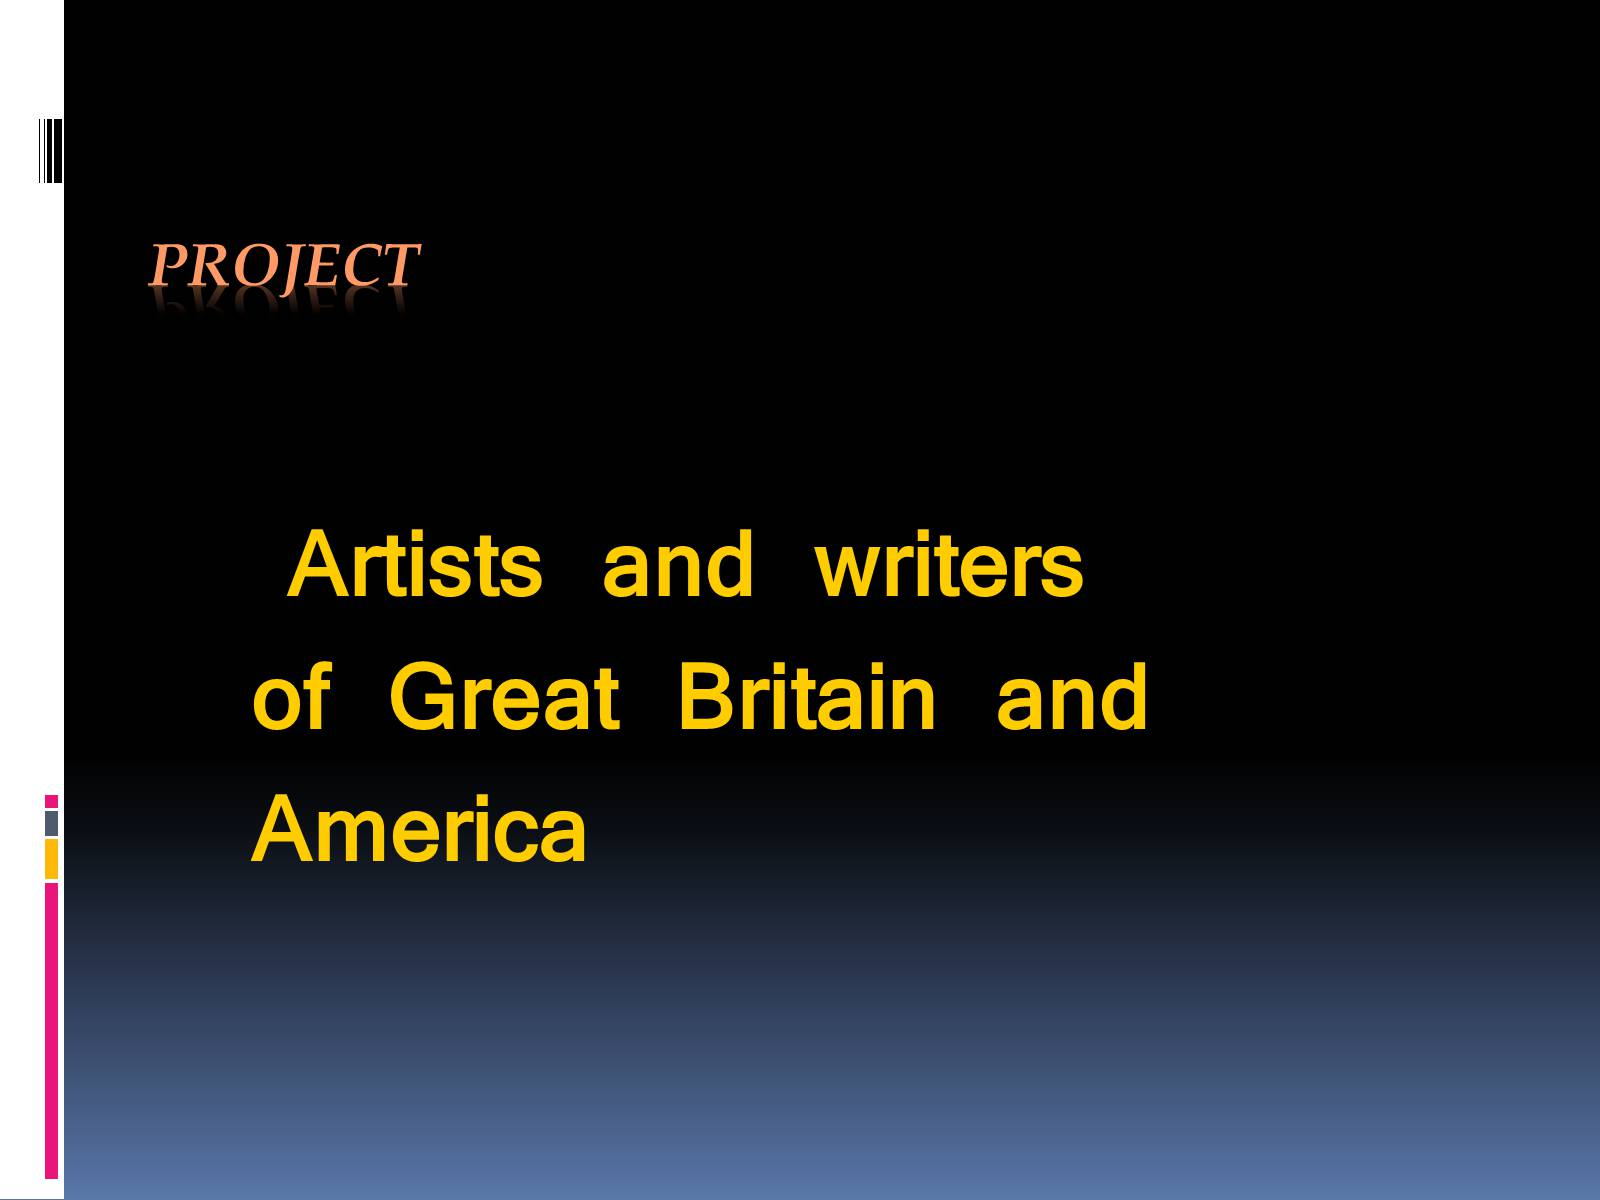 Презентація на тему «Artists and writers of Great Britain and America» - Слайд #1